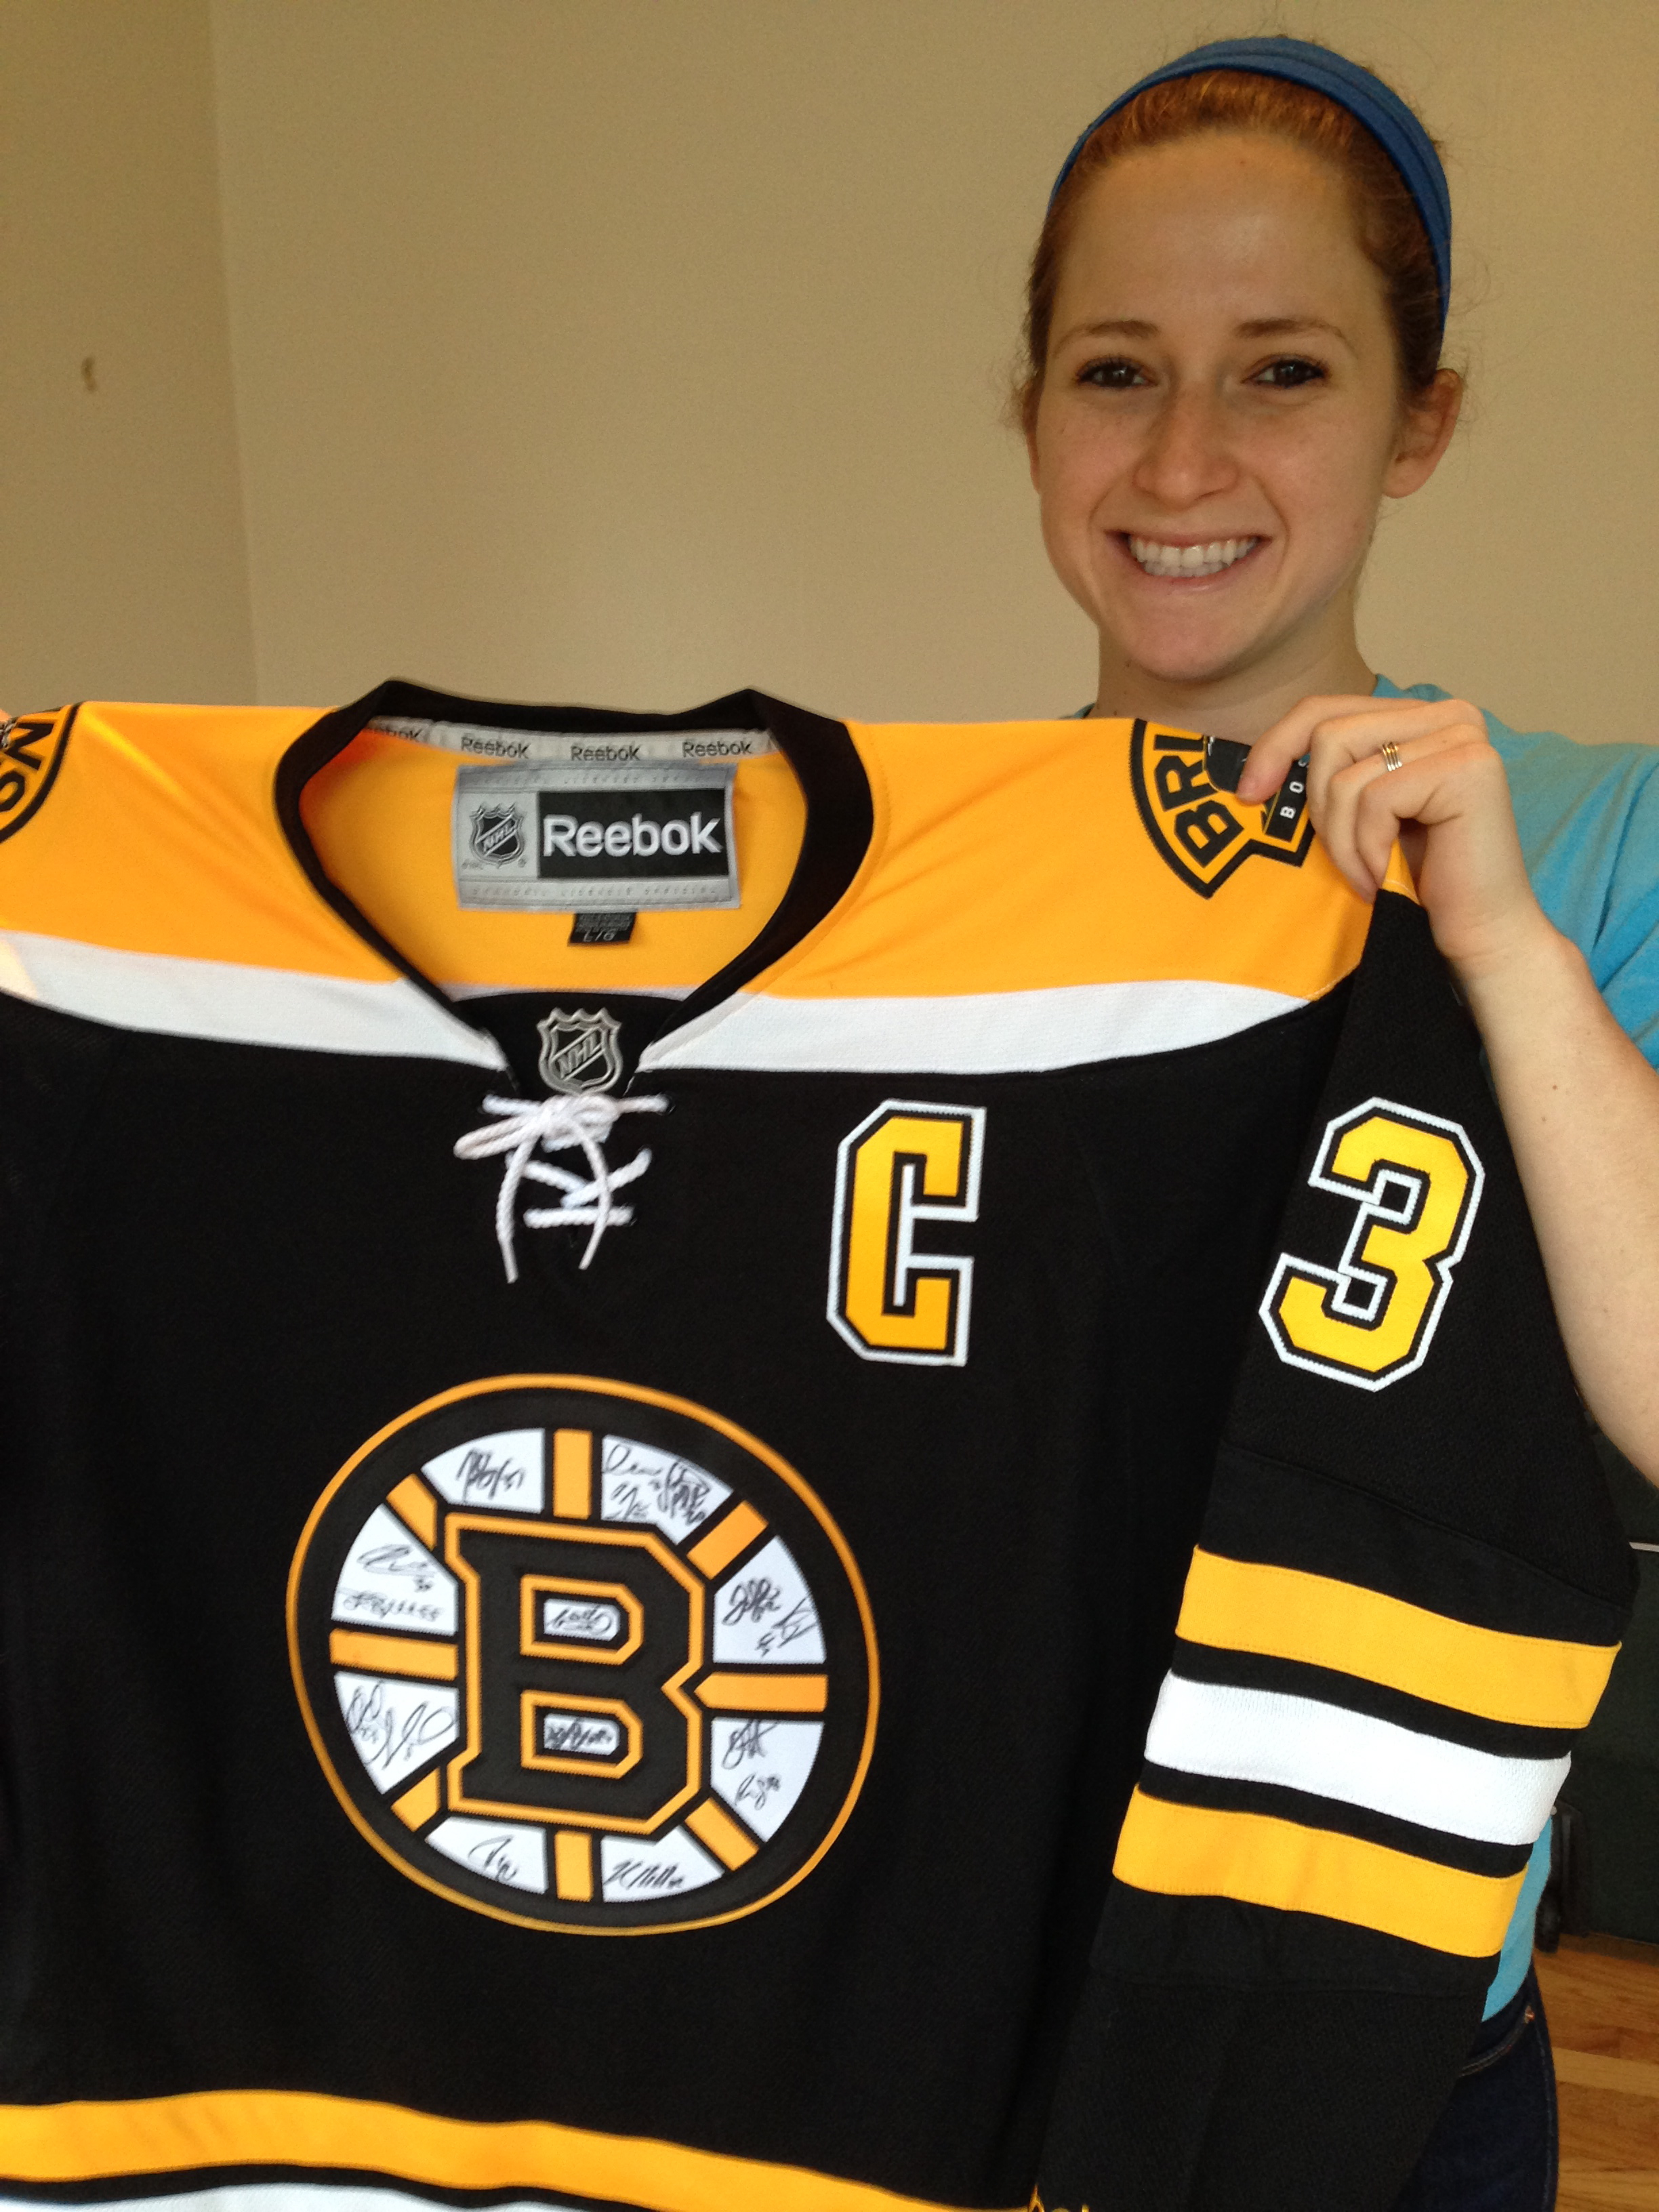 Boston Bruins Chara  33 jersey SIGNED by players of the 2014 Boston ... 6aa23dba28a